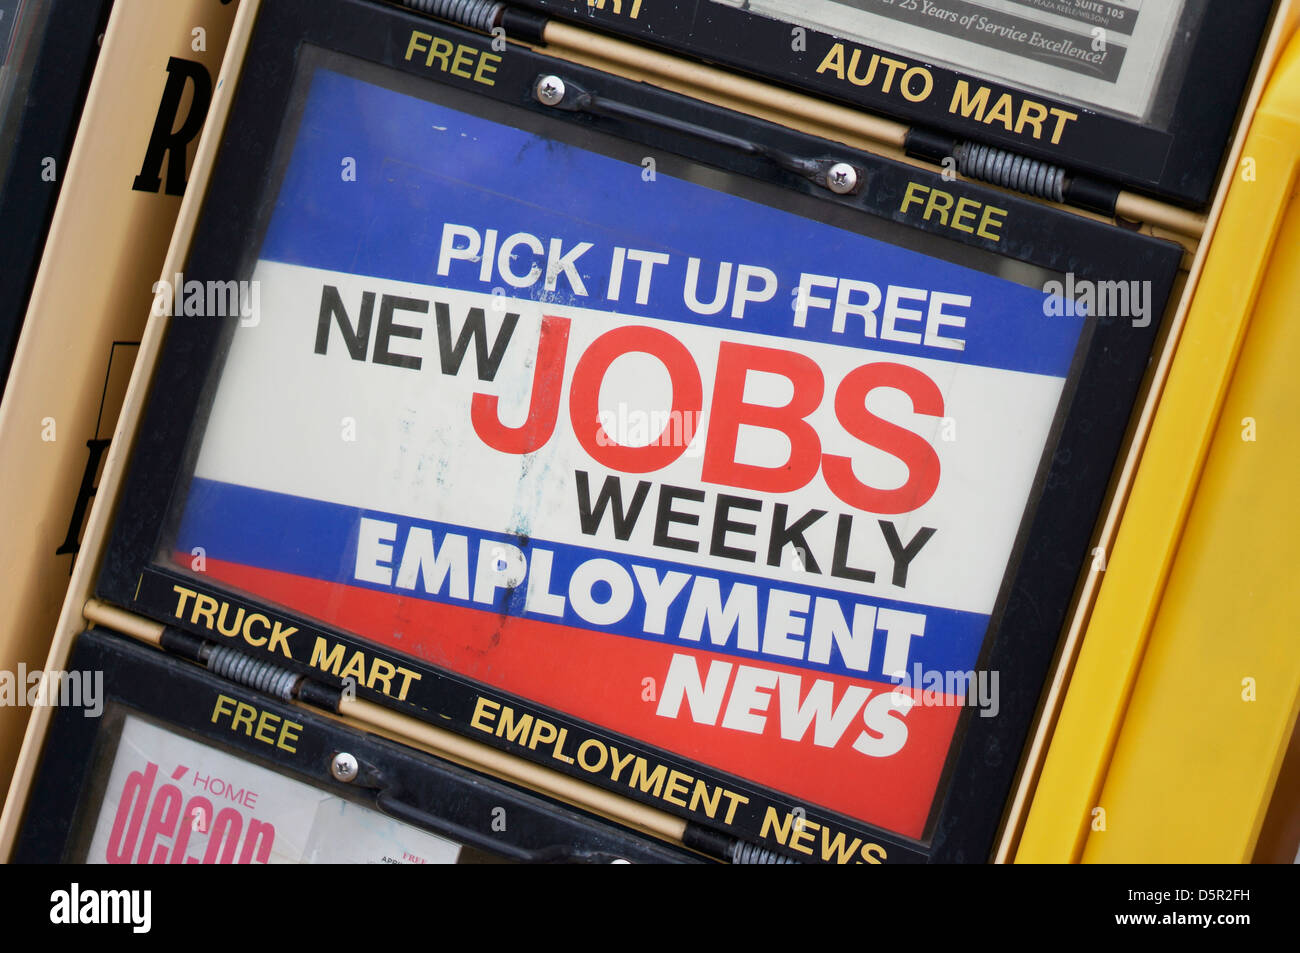 Jobs Weekly Paper Free,  Employment News Stand - Stock Image